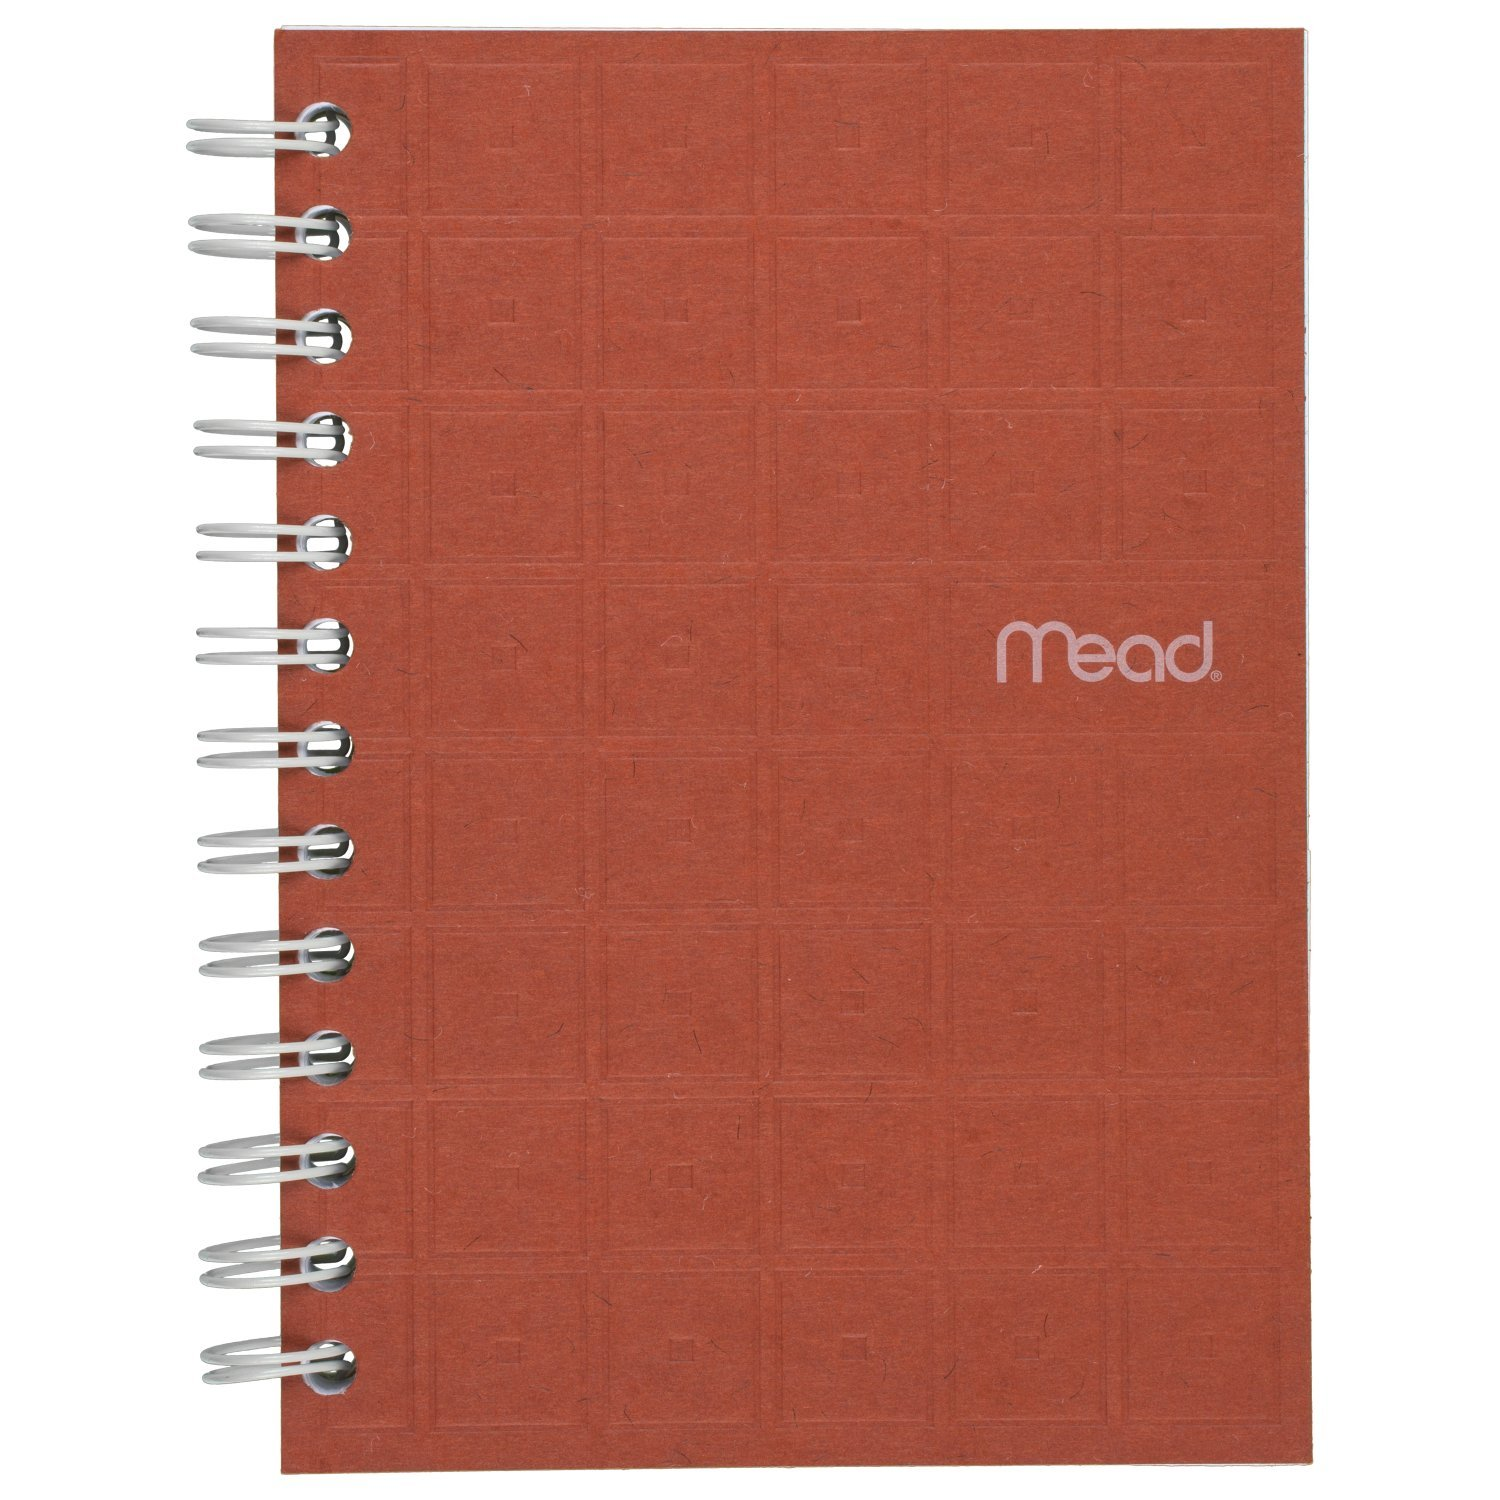 - 1 1 Count 200 Sheets Color Selected For You Five Star Spiral Notebook 45388 5-1//2 x 3-1//2 Fat Lil Pocket Notebook College Ruled Paper